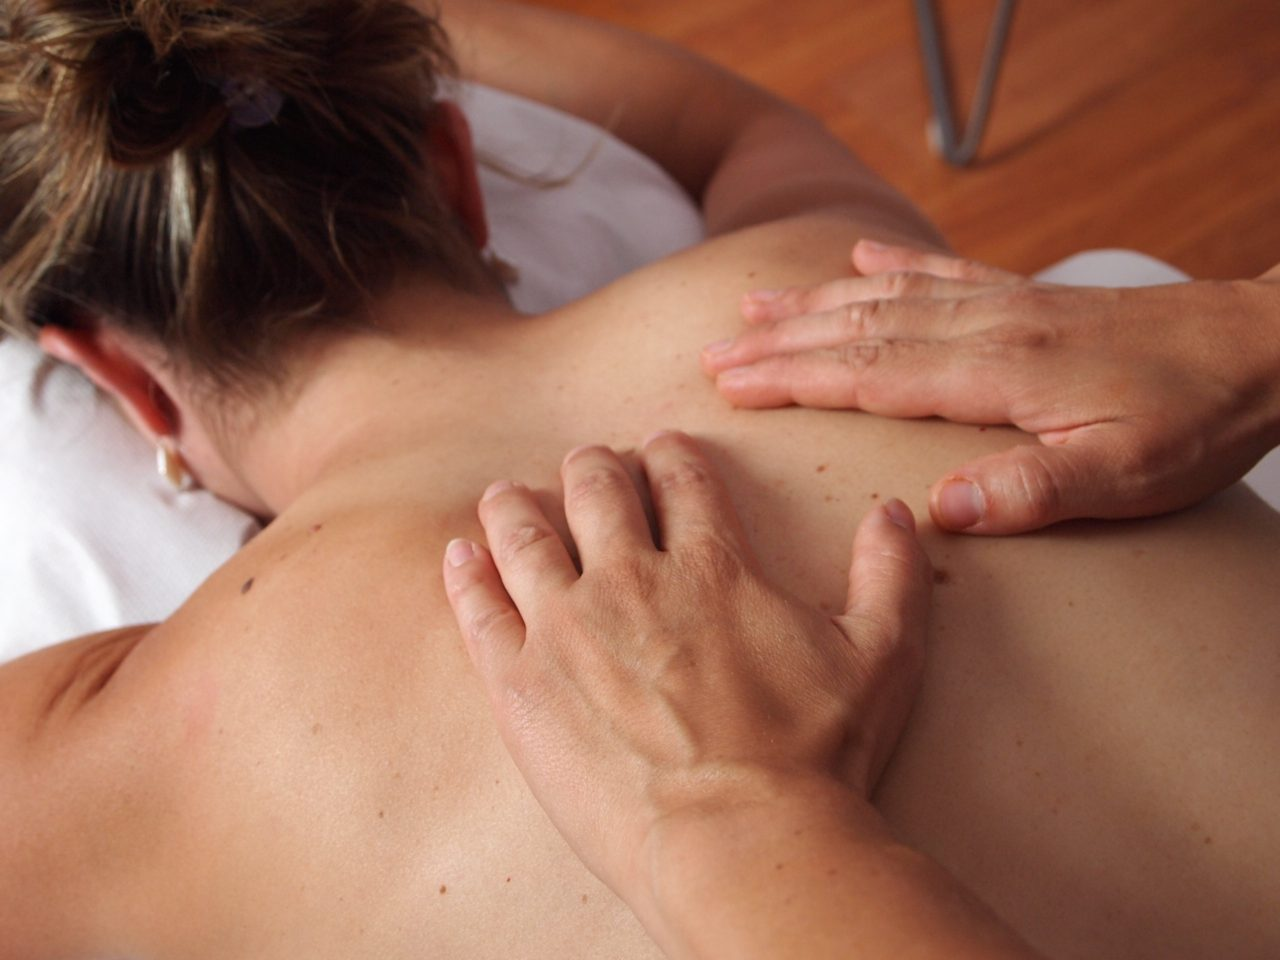 physiotherapy-567021-1280x960.jpg